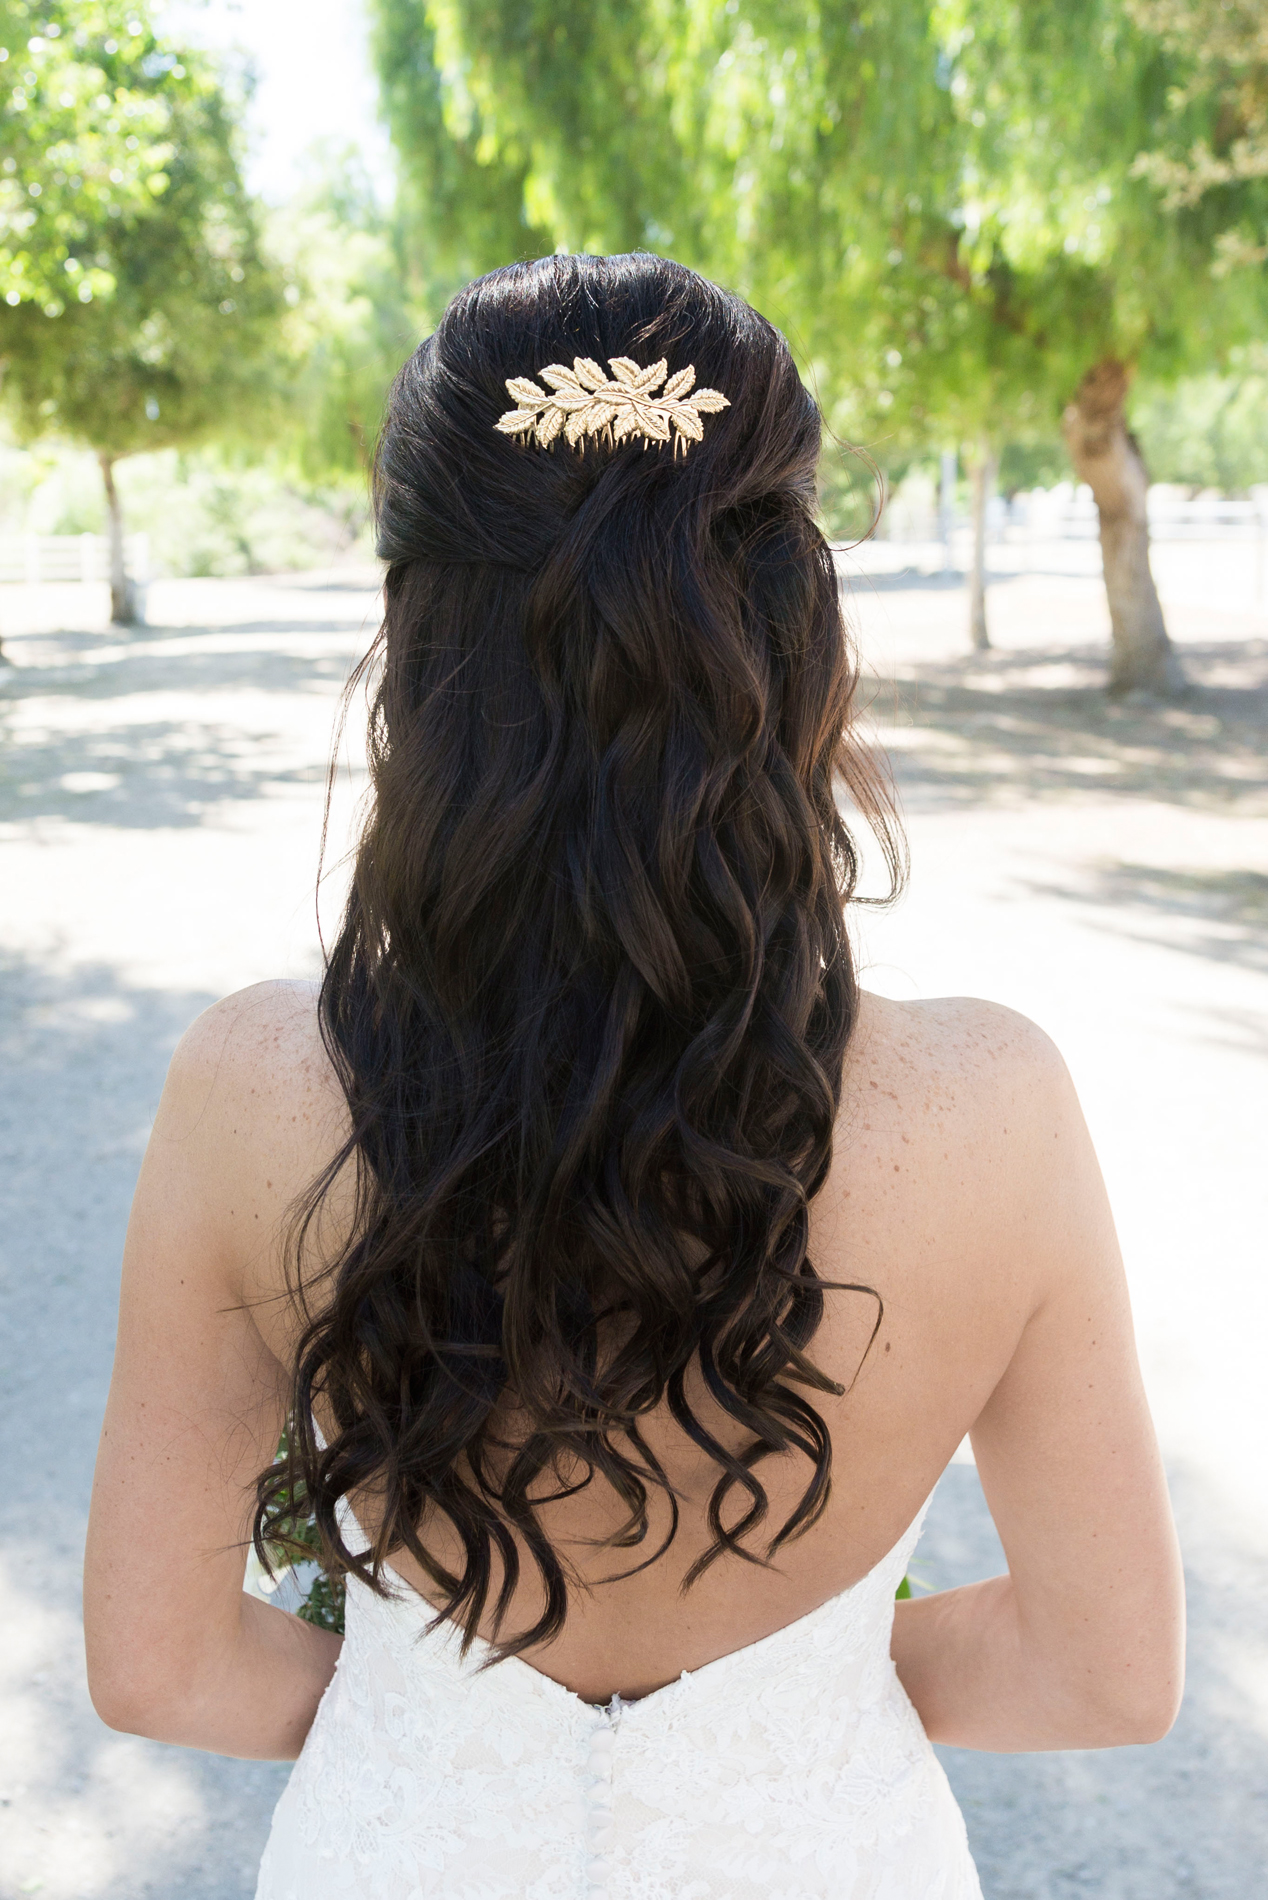 Half Up Half Down Bridal Hairstyle - A McCoy Equestrian Center Wedding - Peterson Design & Photography